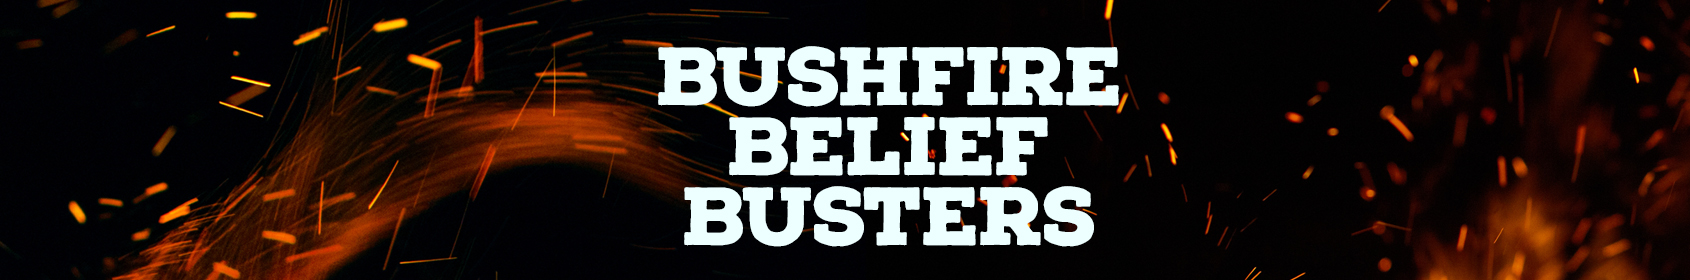 belief busters header graphic